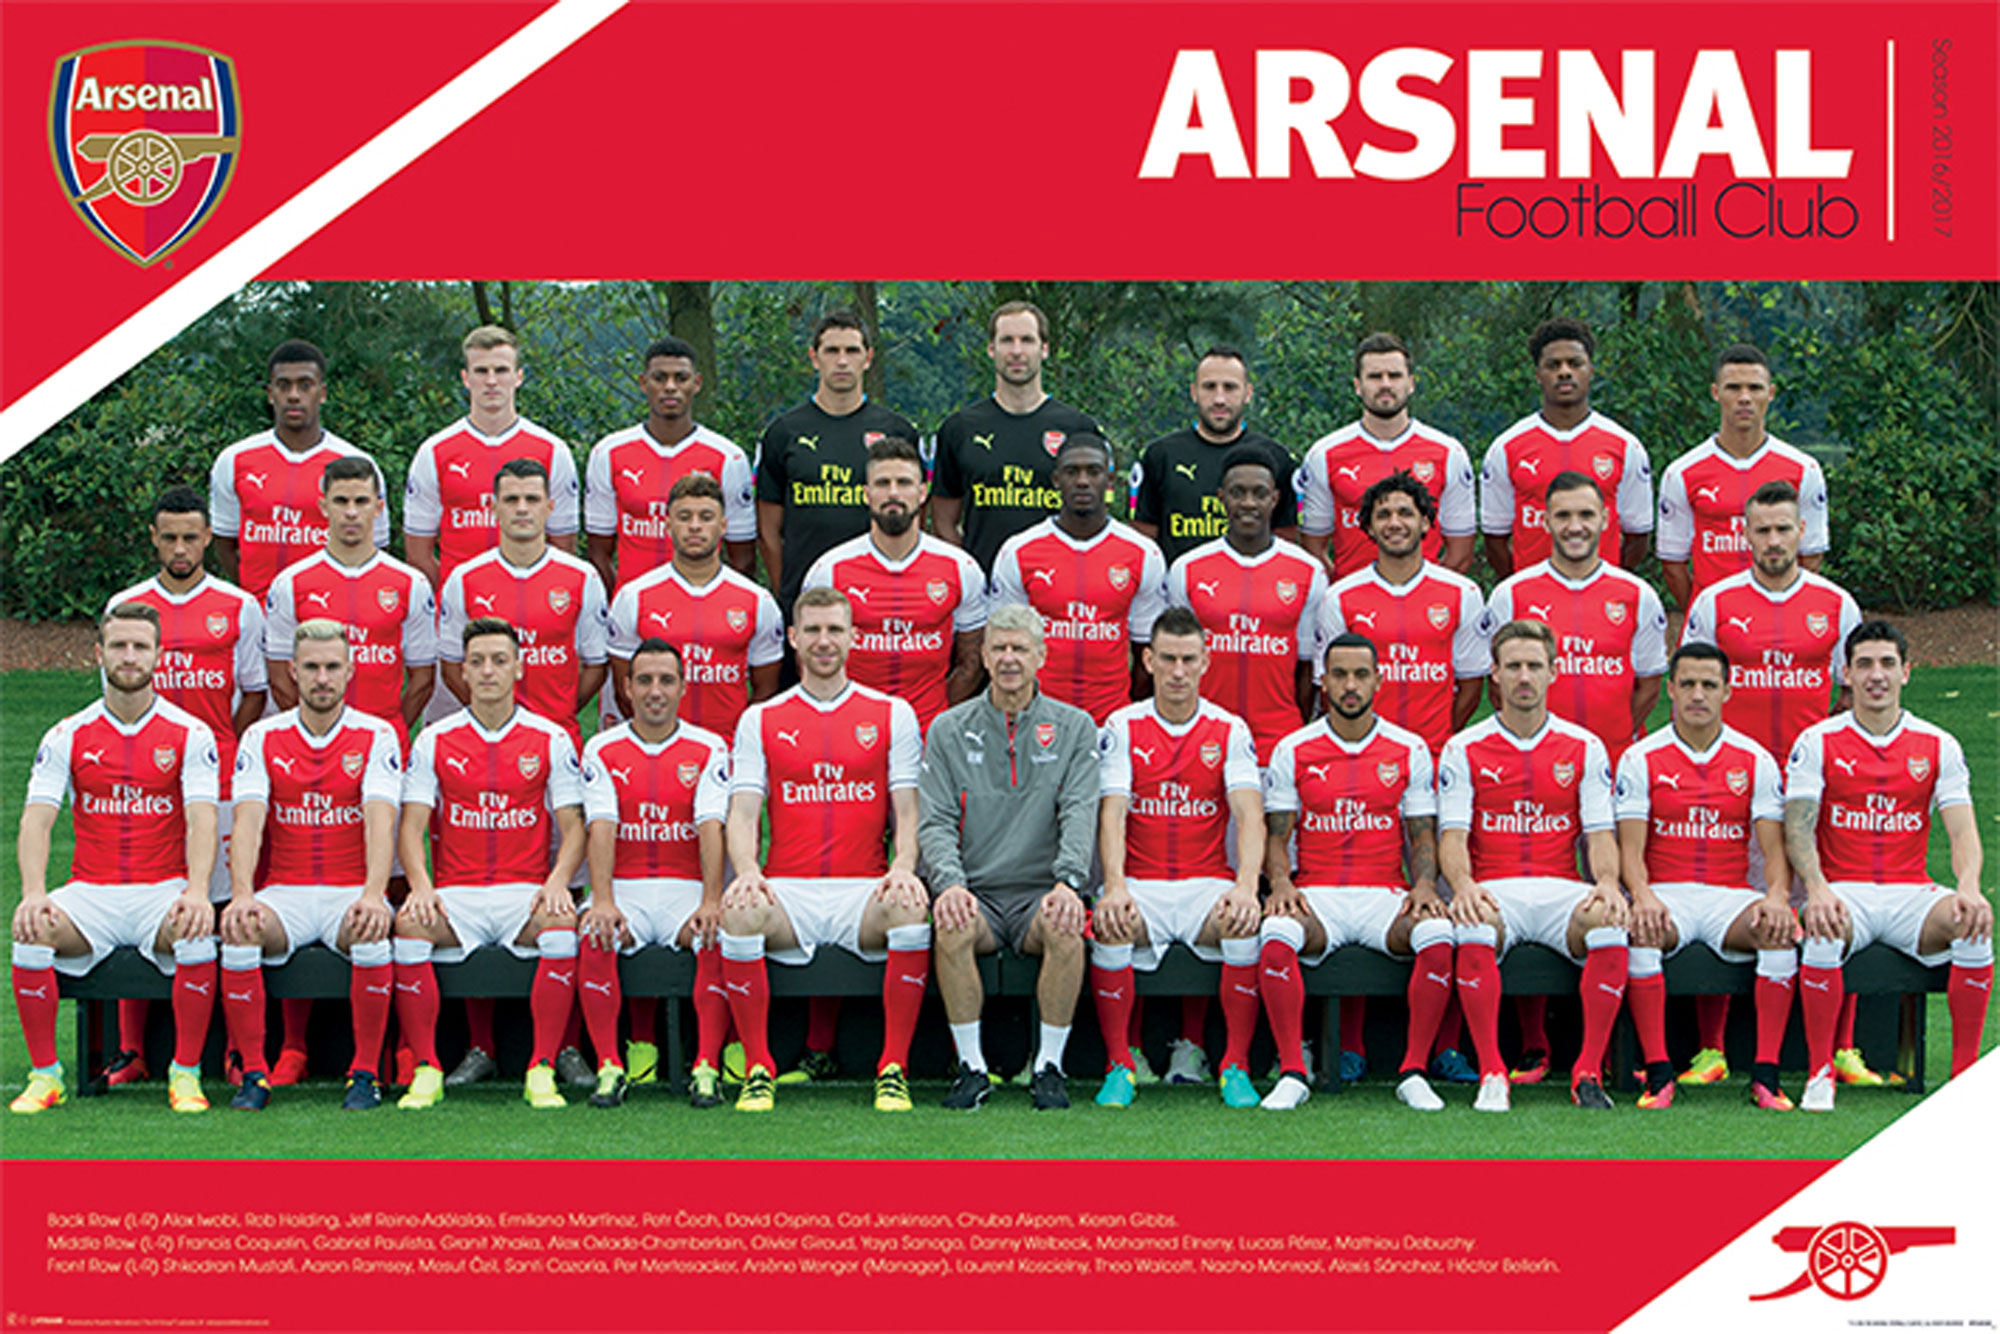 Arsenal FC - Poster - Team 16/17